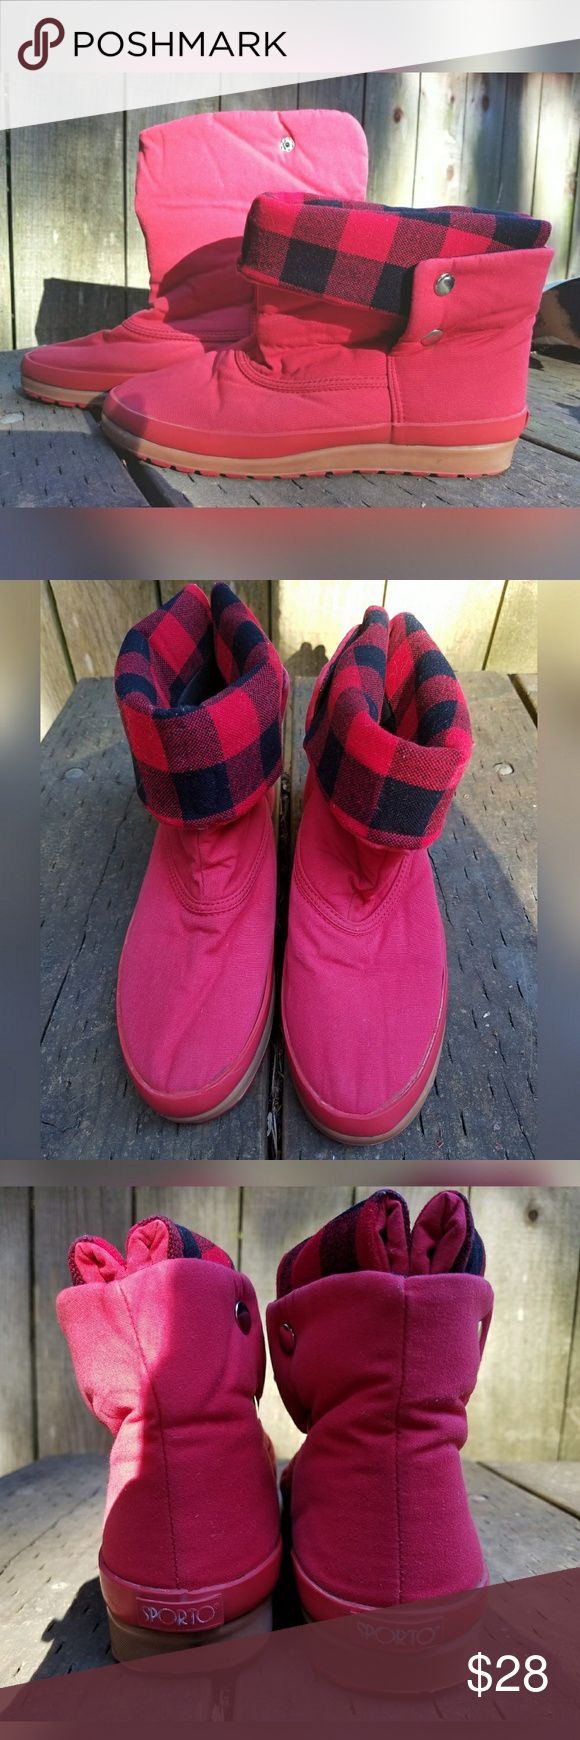 Sweet, VINTAGE, SPORTO boots!! Super cool. Can be worn up or folded down to reveal plaid lining. Brand is Sporto. No tags for size. Would fit Women's 7.5/8. Insoles are missing. Otherwise, in great condition. Vintage Shoes Winter & Rain Boots